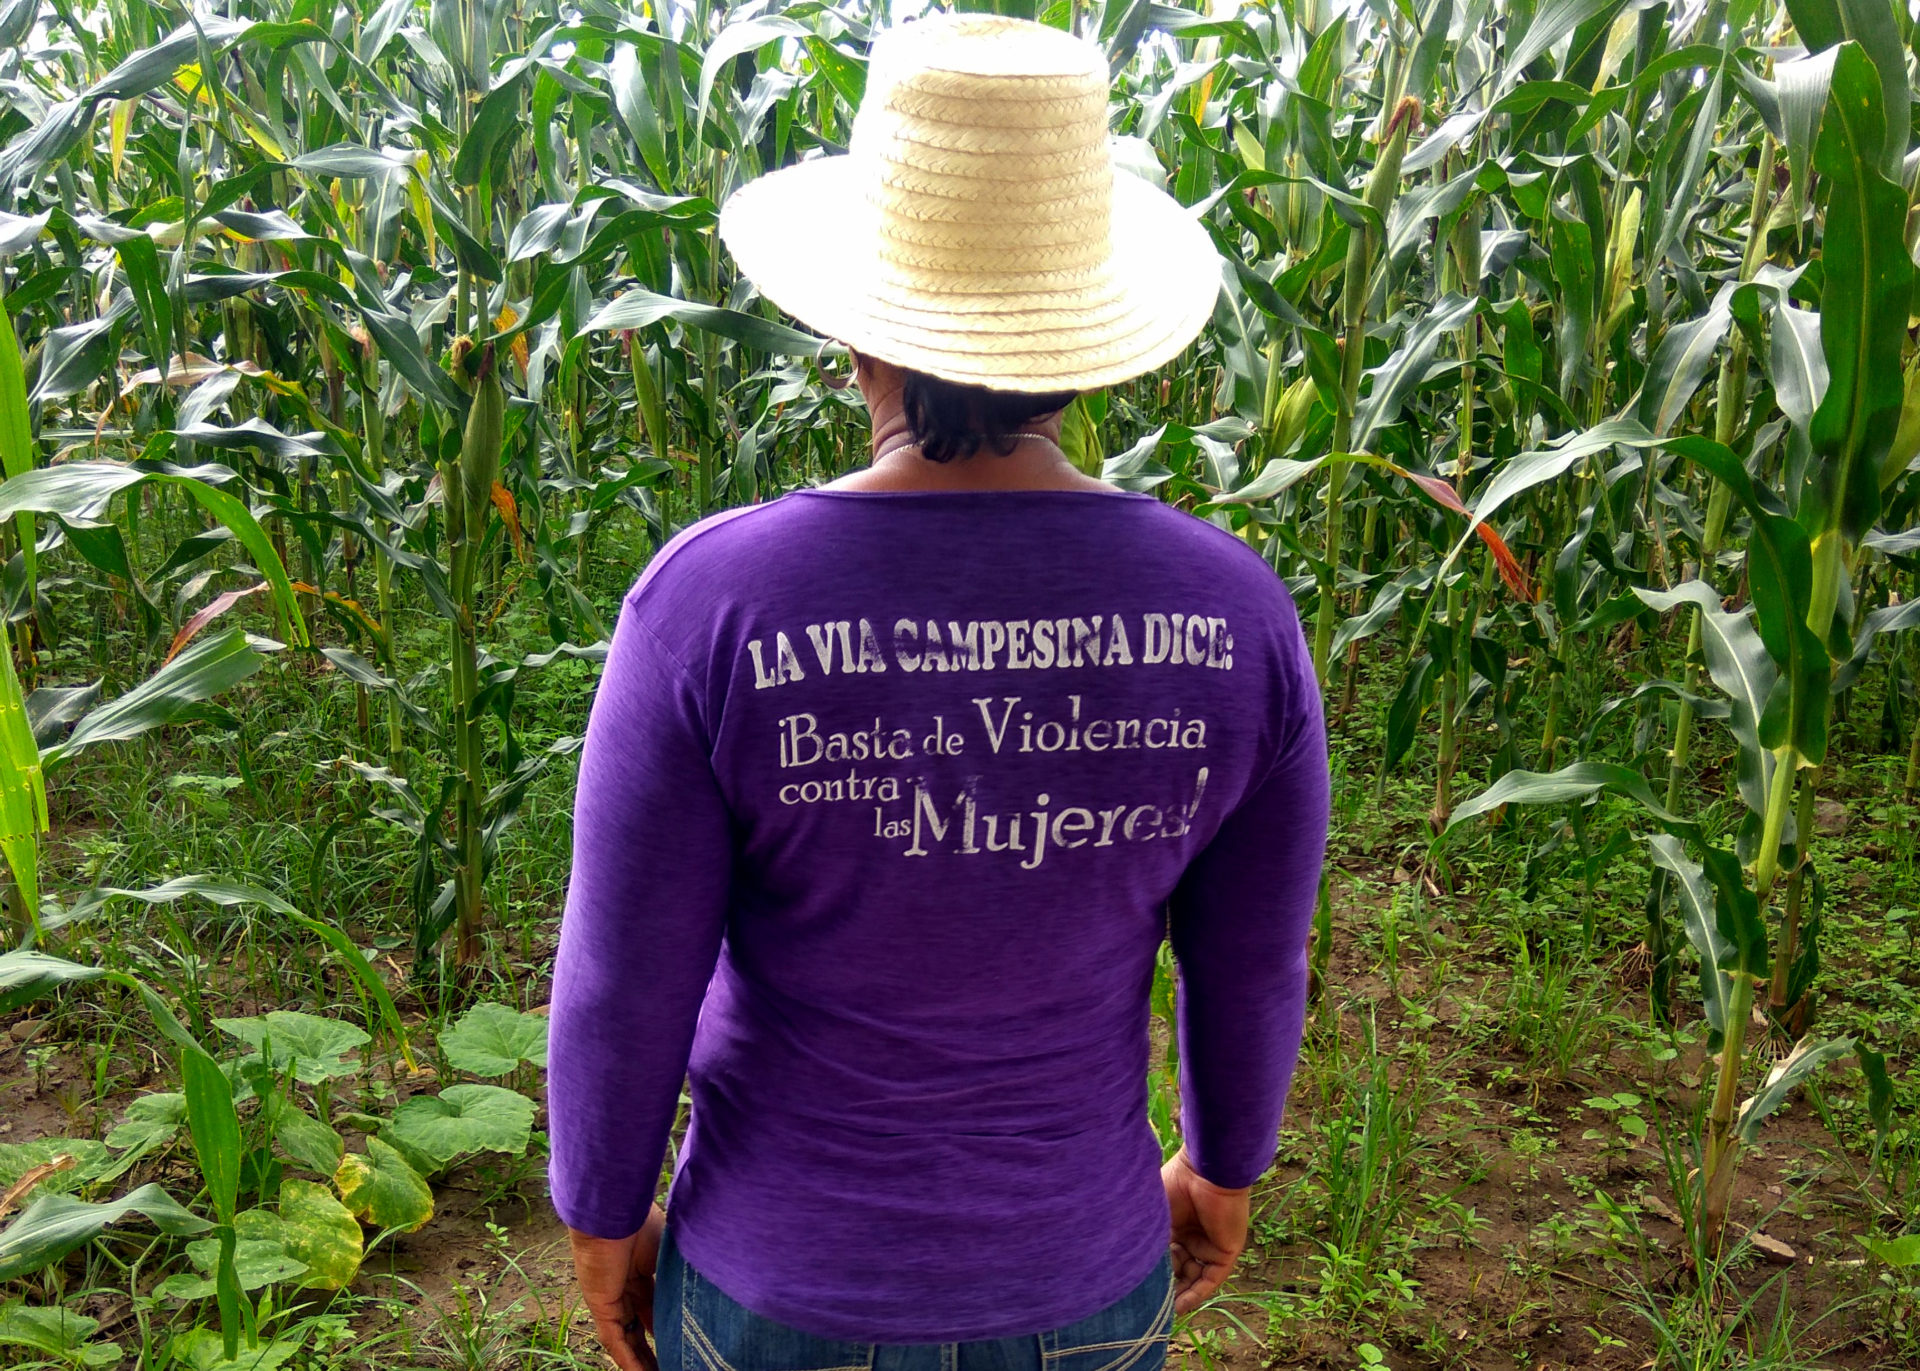 Nohemi Belinda Zuniga Lopez and her friends run a collective growing sweetcorn and beans. They are part of the international organisation La Vía Campesina, that also takes action on violence against women. Photo: S. Umachandran